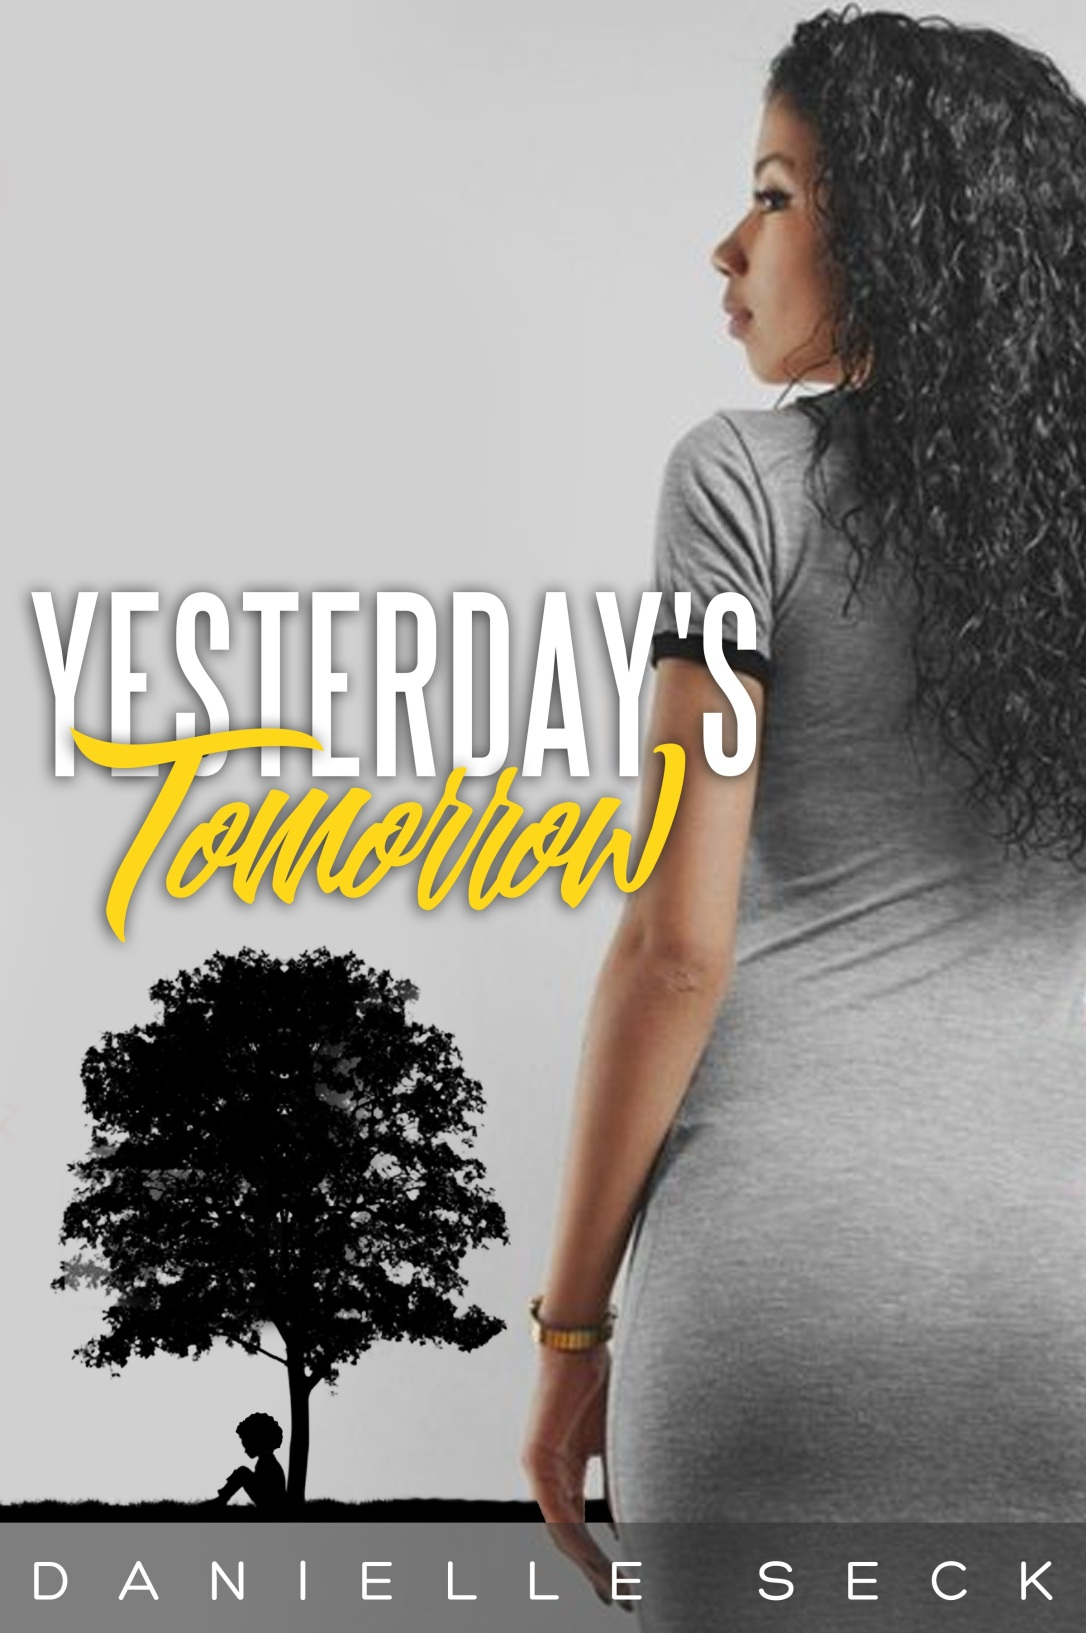 Yesterday's Tomorrow Book Cover